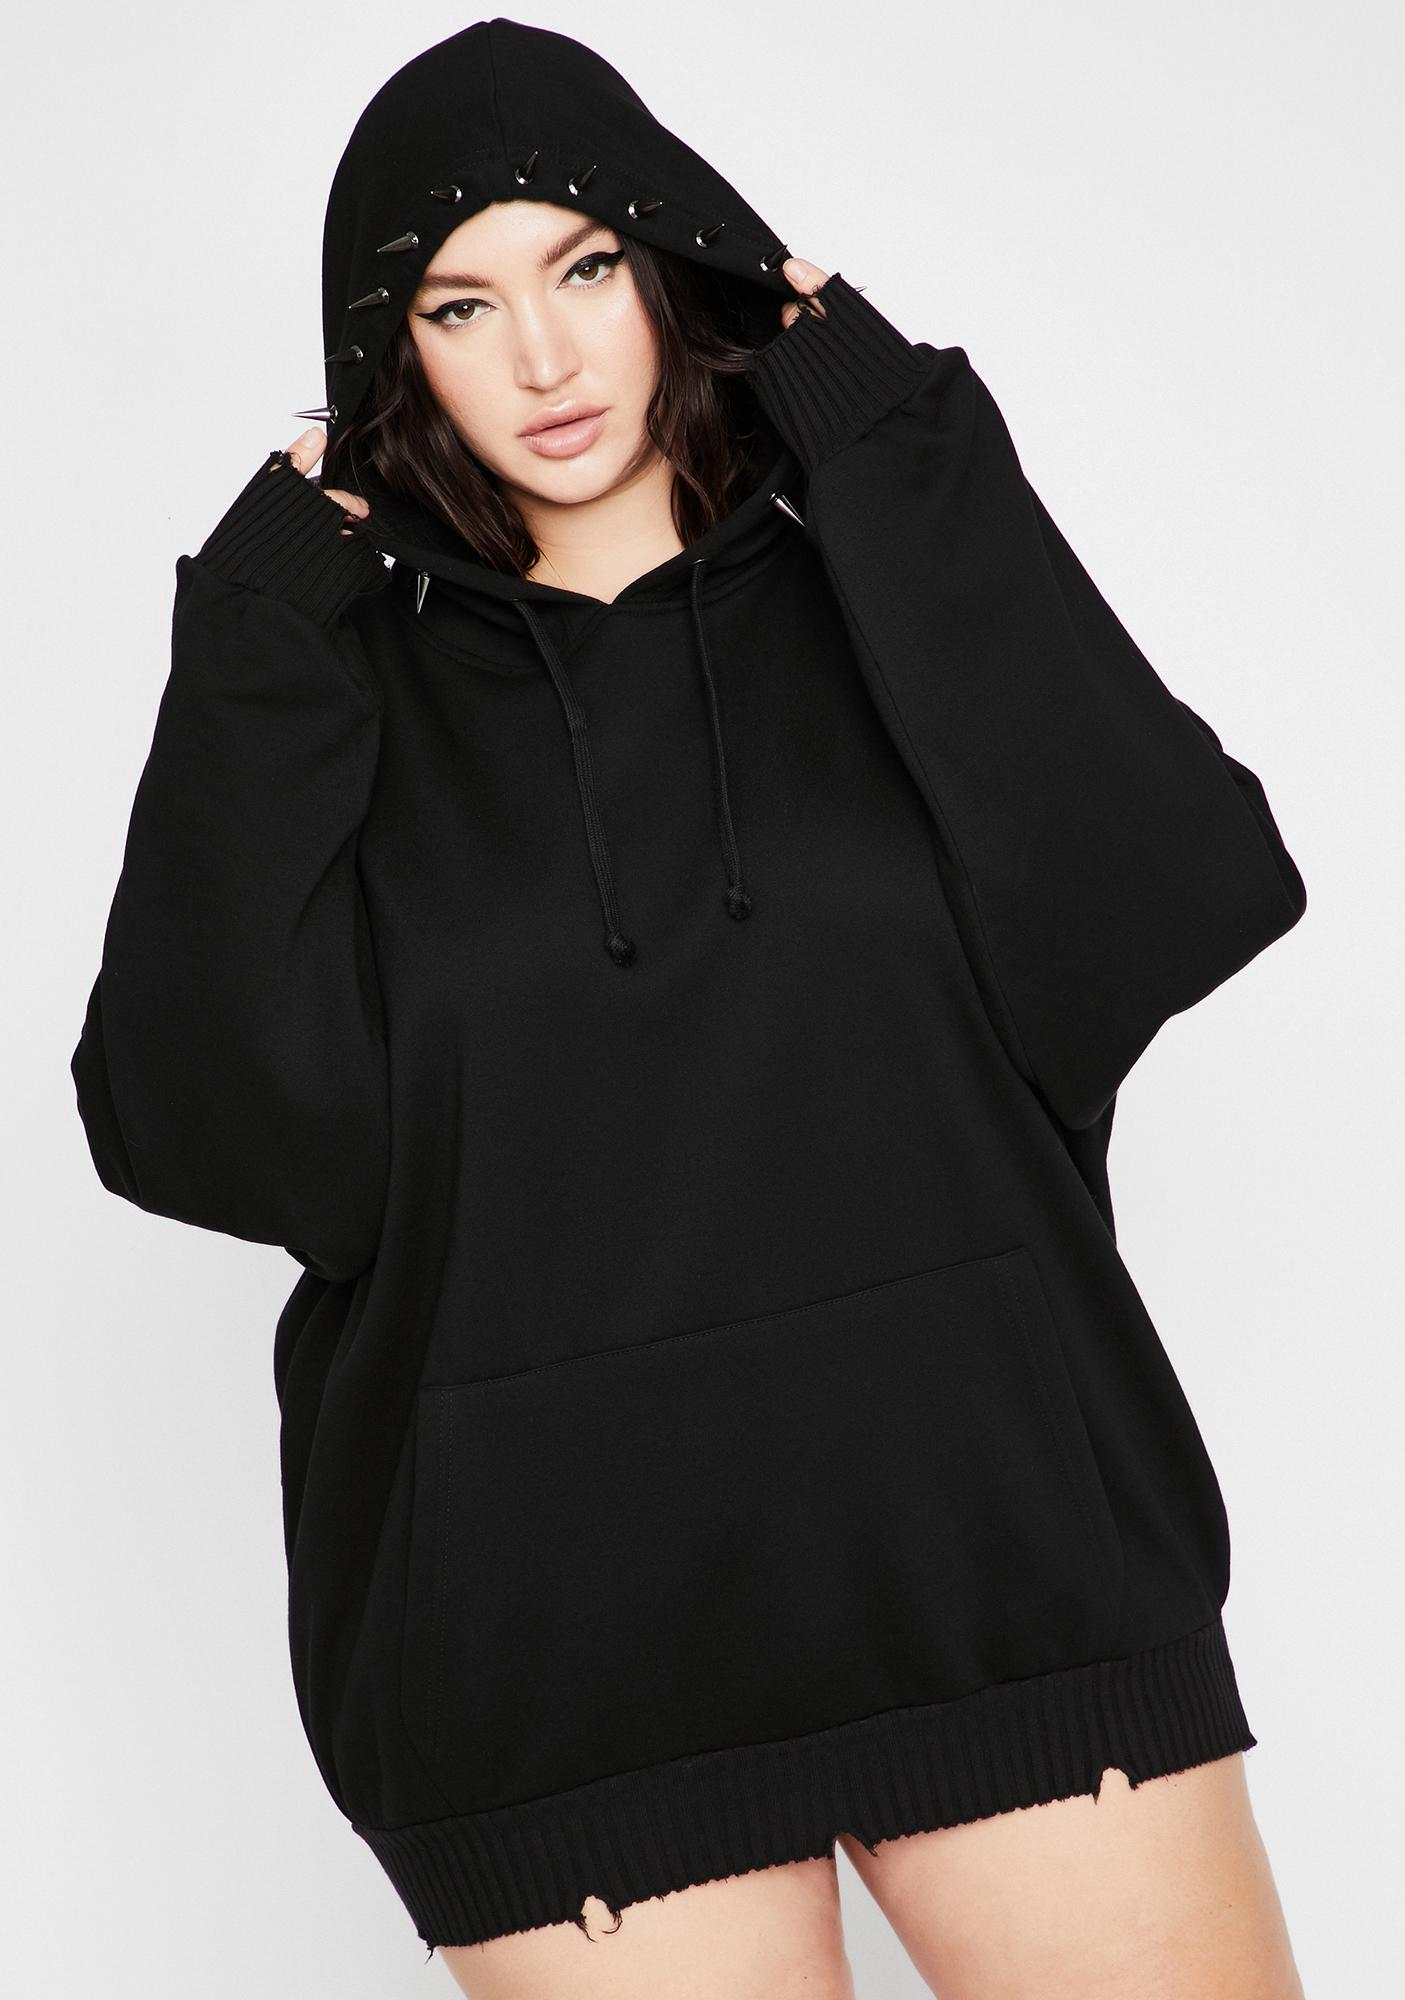 Current Mood Totally Deranged Desire Spiked Hoodie